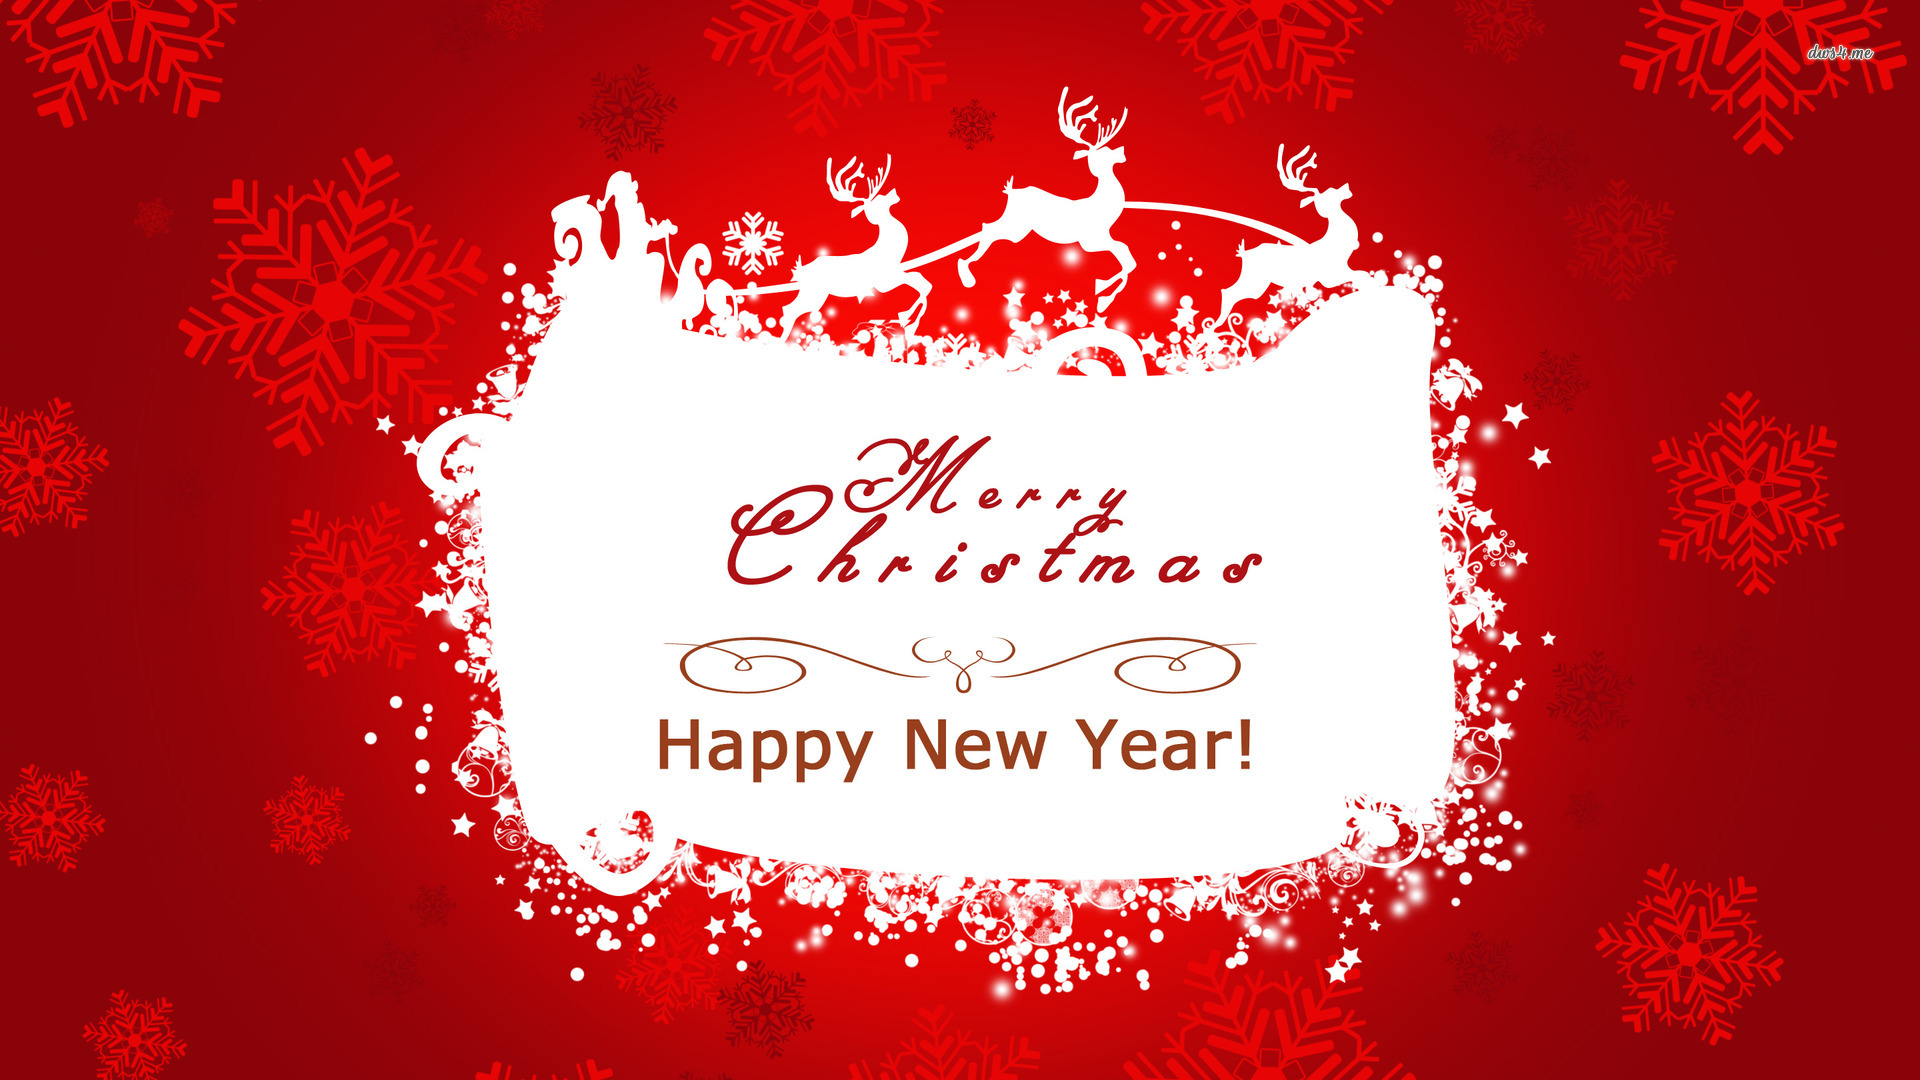 merry christmas and happy new year holiday wallpaper